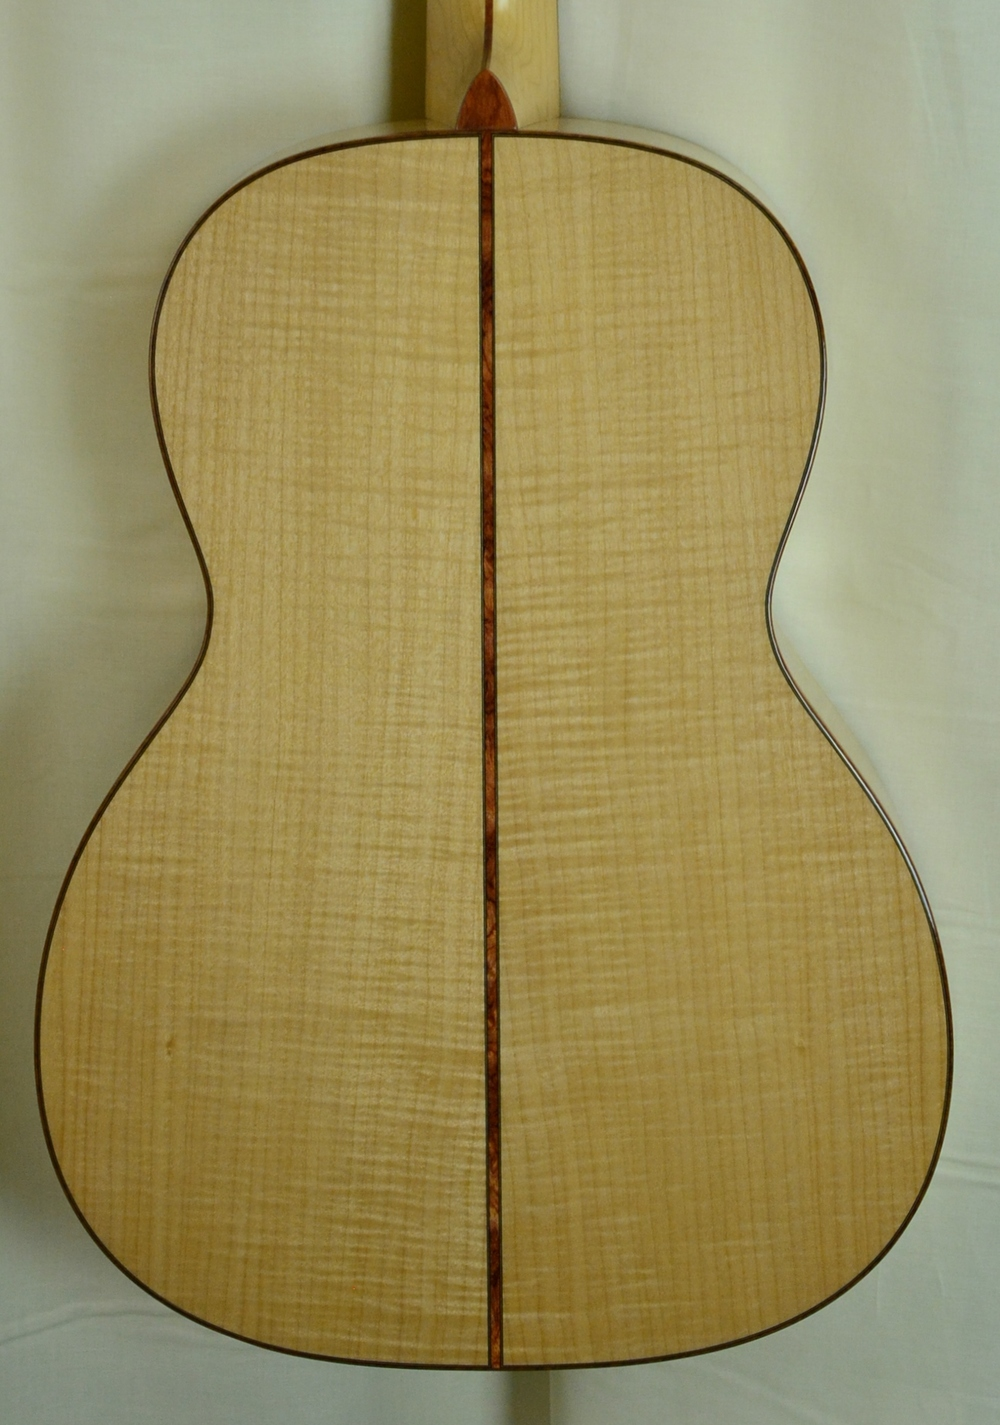 Q-2658124 S-1938295 00028VS Pacific Big Leaf Maple AAAA, Maple neck Bubinga binding (4).JPG